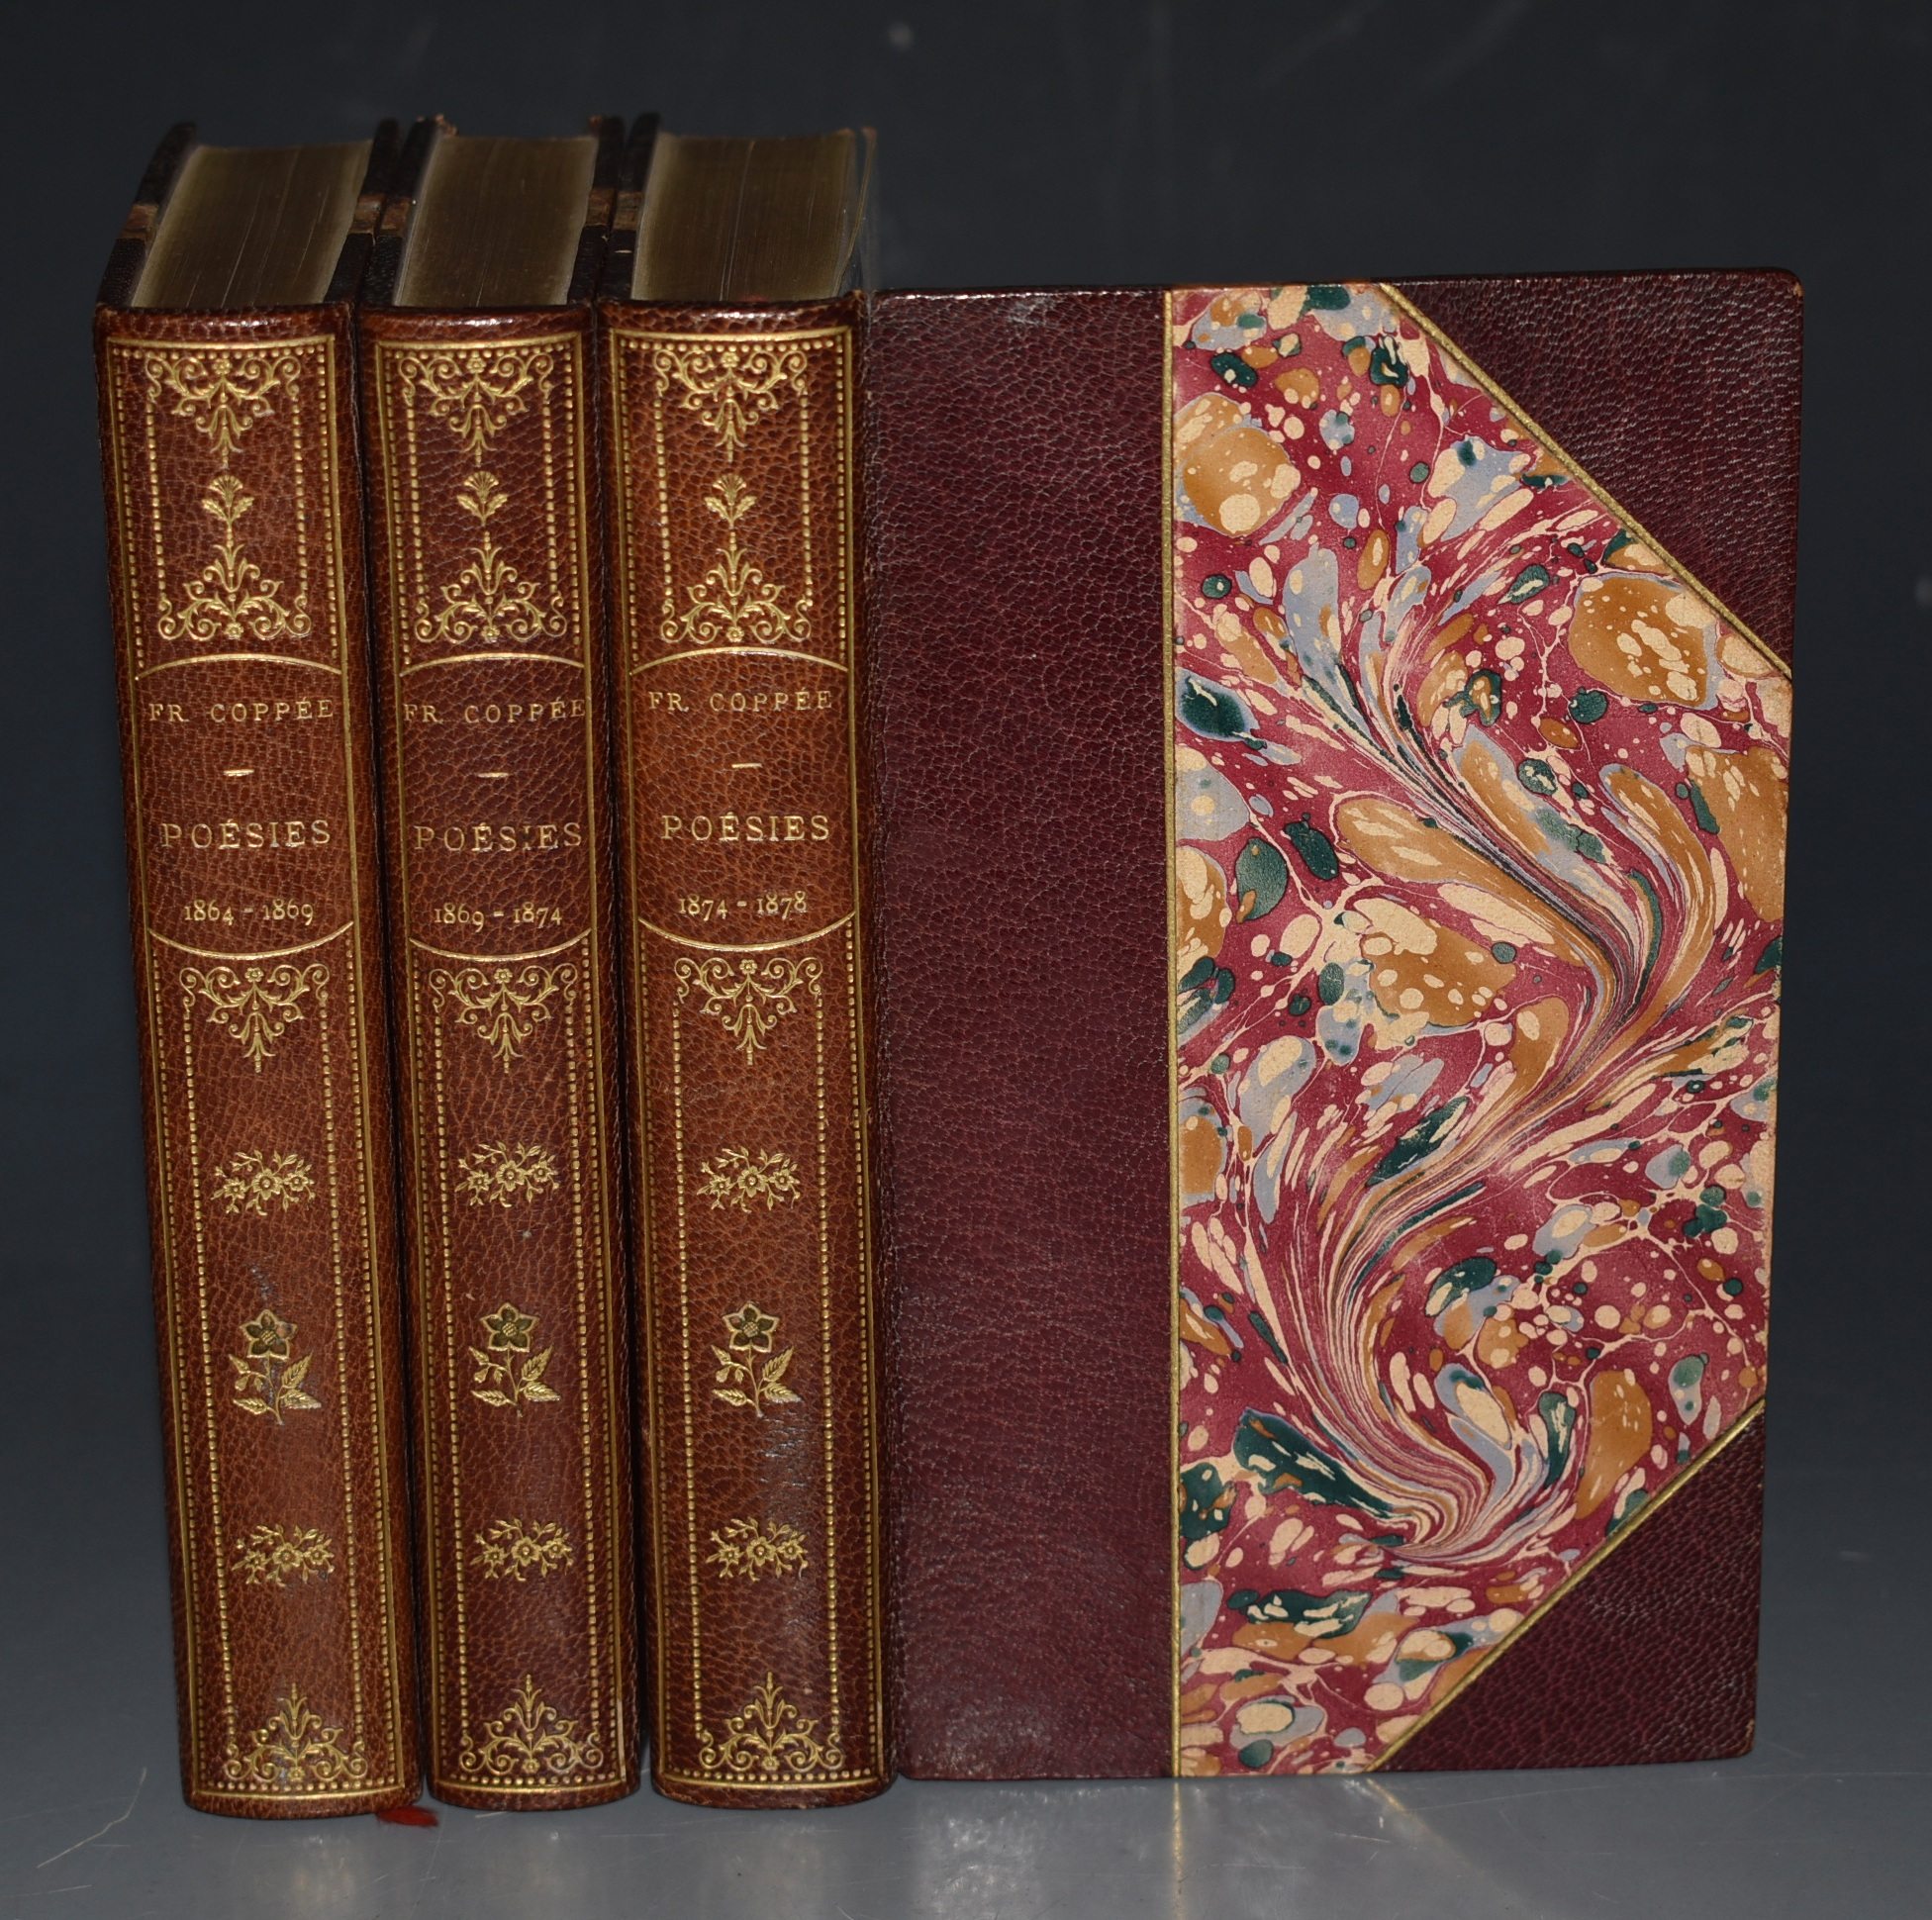 Image for Poesies de Francis Coppee. 1864-1869, 1869-1874, 1874-1878. In Three Volumes.